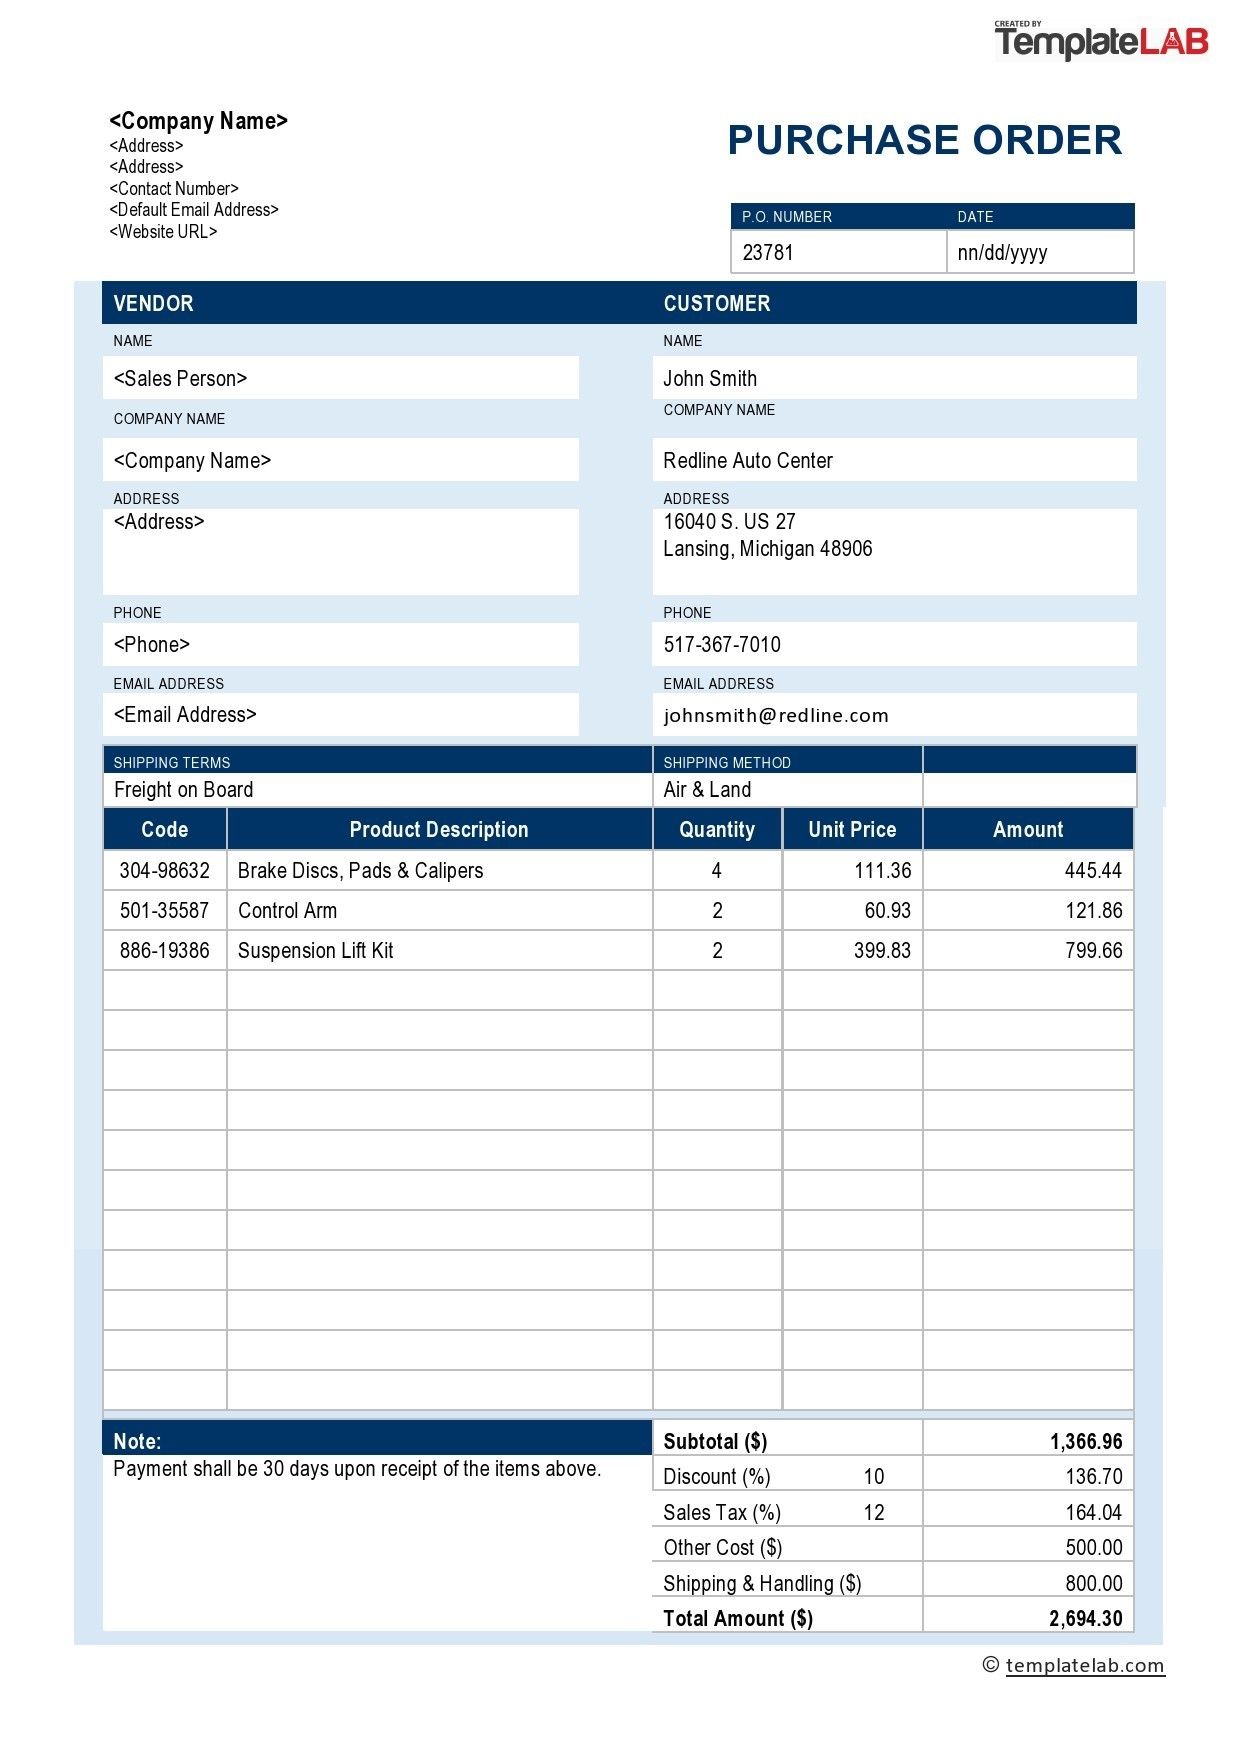 Free Purchase Order Template v3